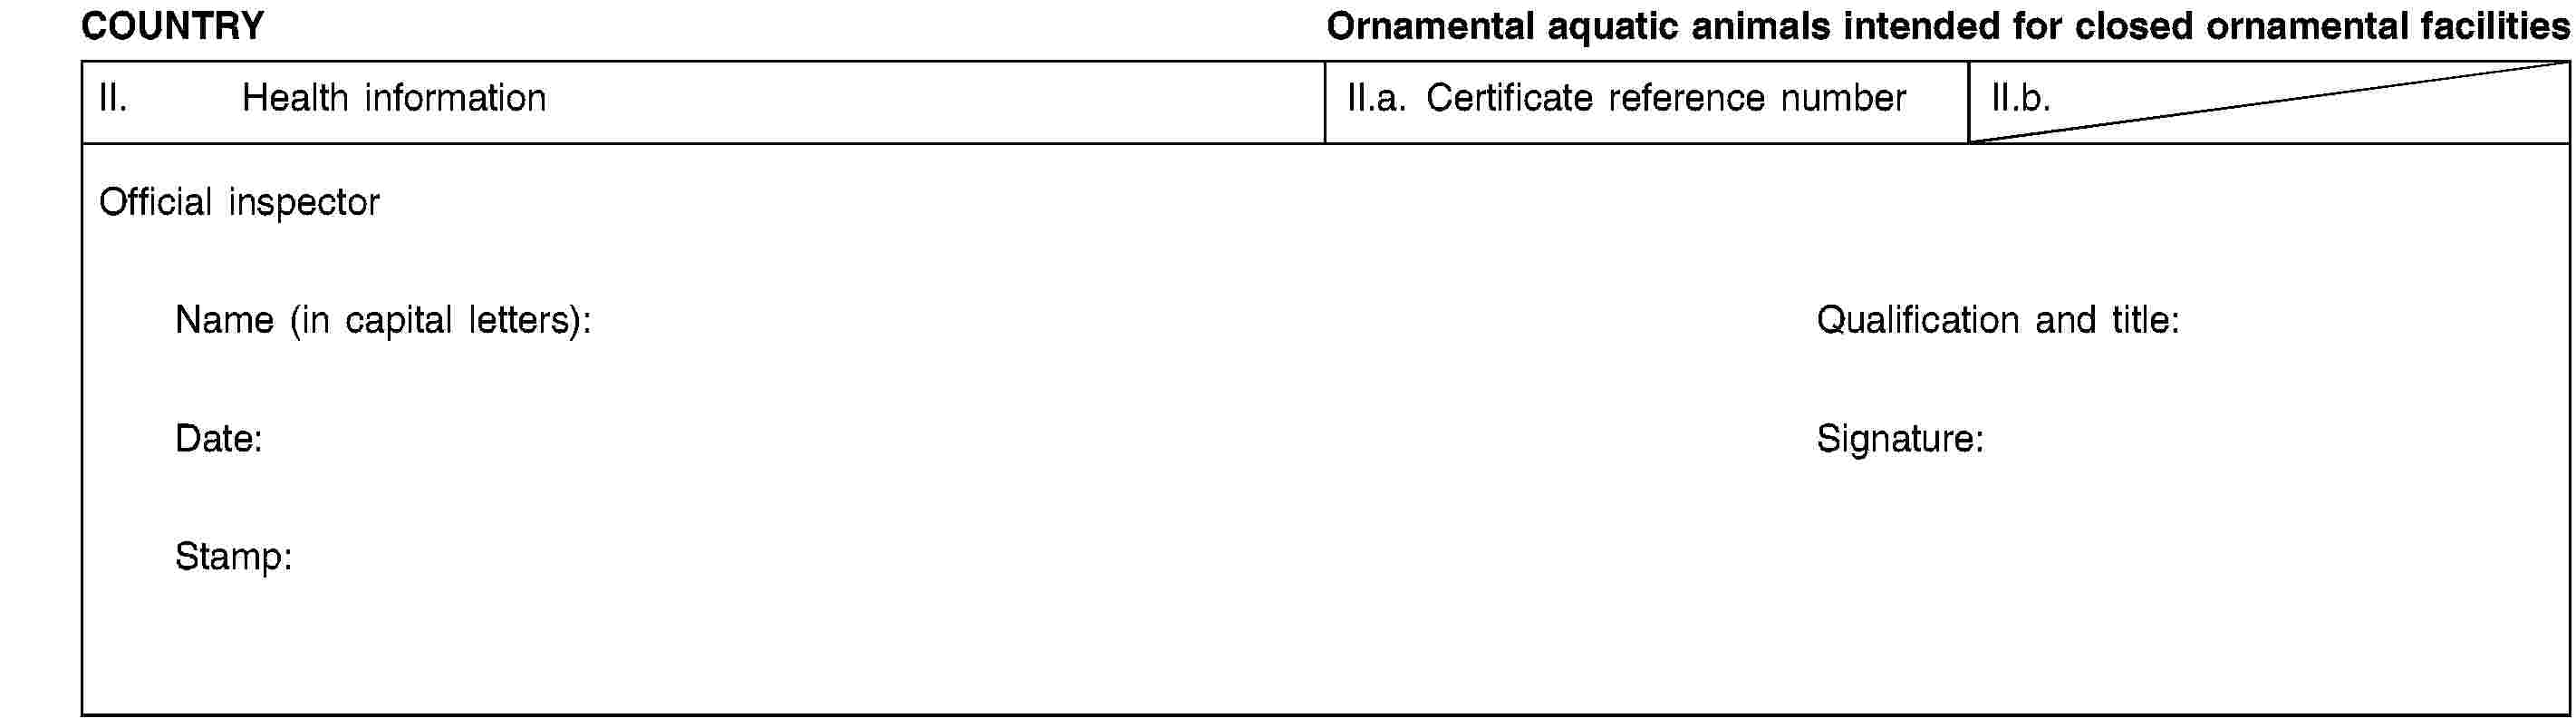 COUNTRYOrnamental aquatic animals intended for closed ornamental facilitiesII. Health informationII.a. Certificate reference numberII.b.Official inspectorName (in capital letters):Qualification and title:Date:Signature:Stamp: